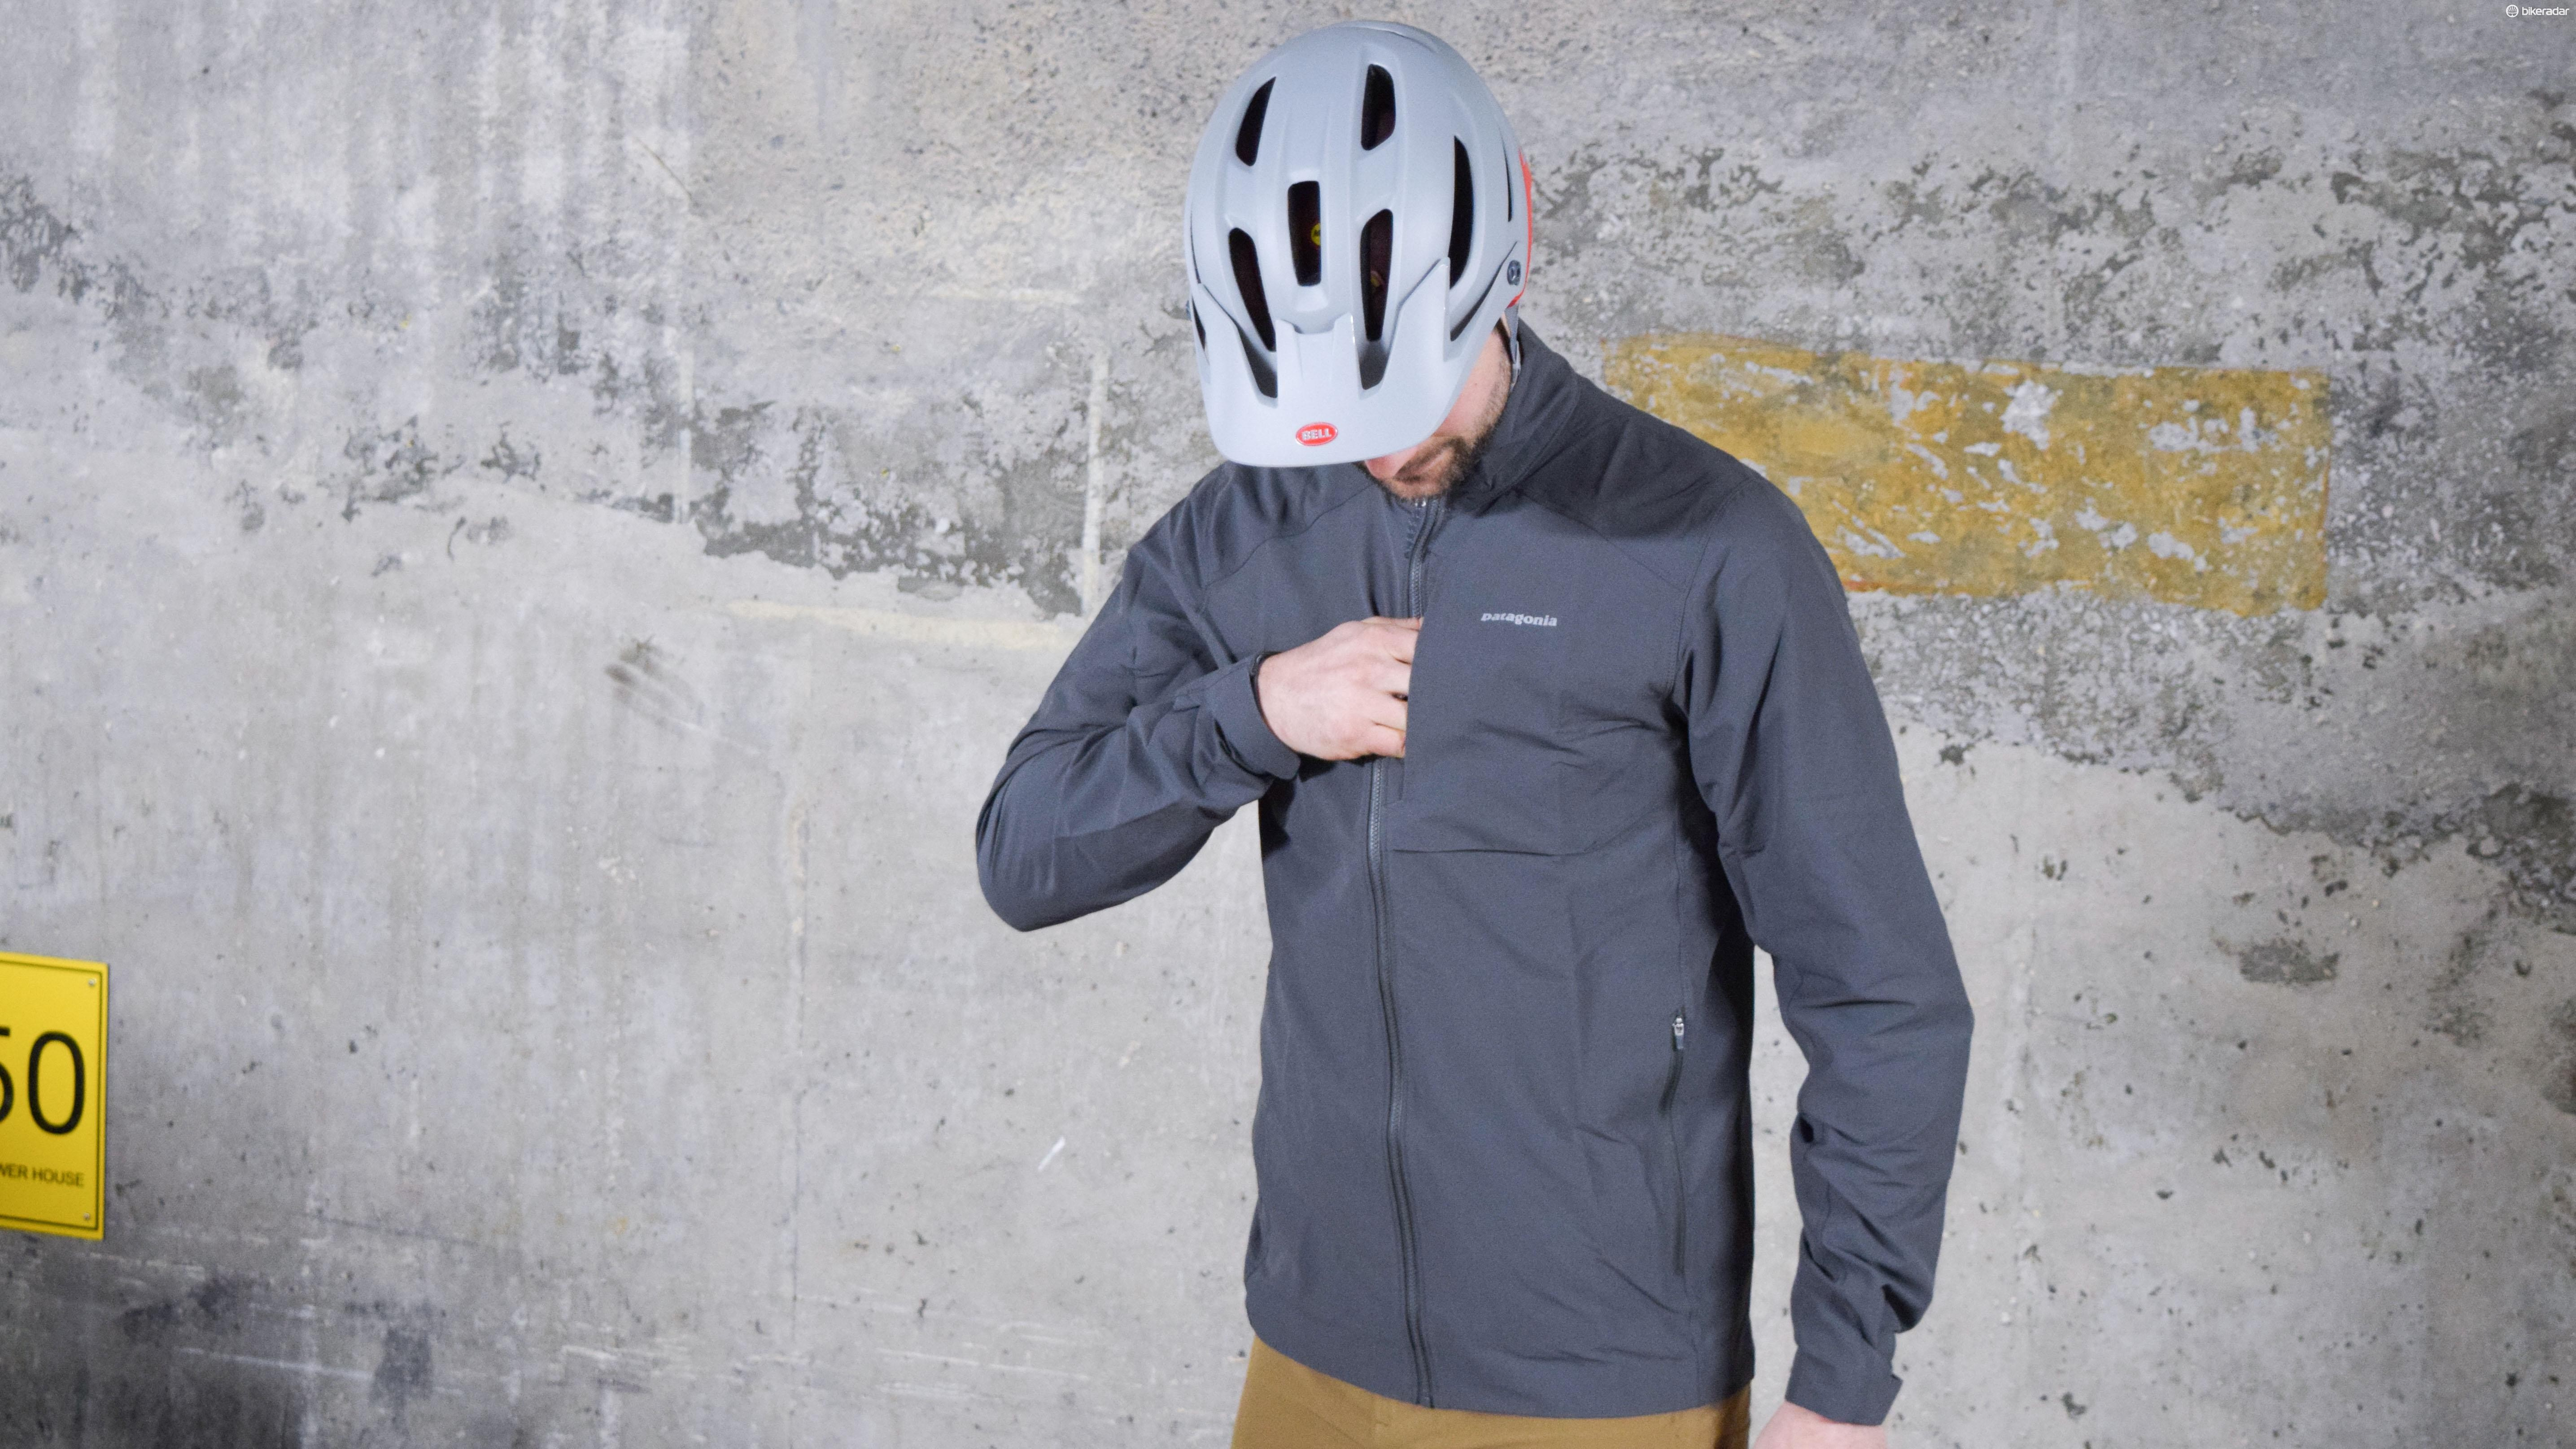 Patagonia's Dirt Craft jacket is well fitted and looks understated